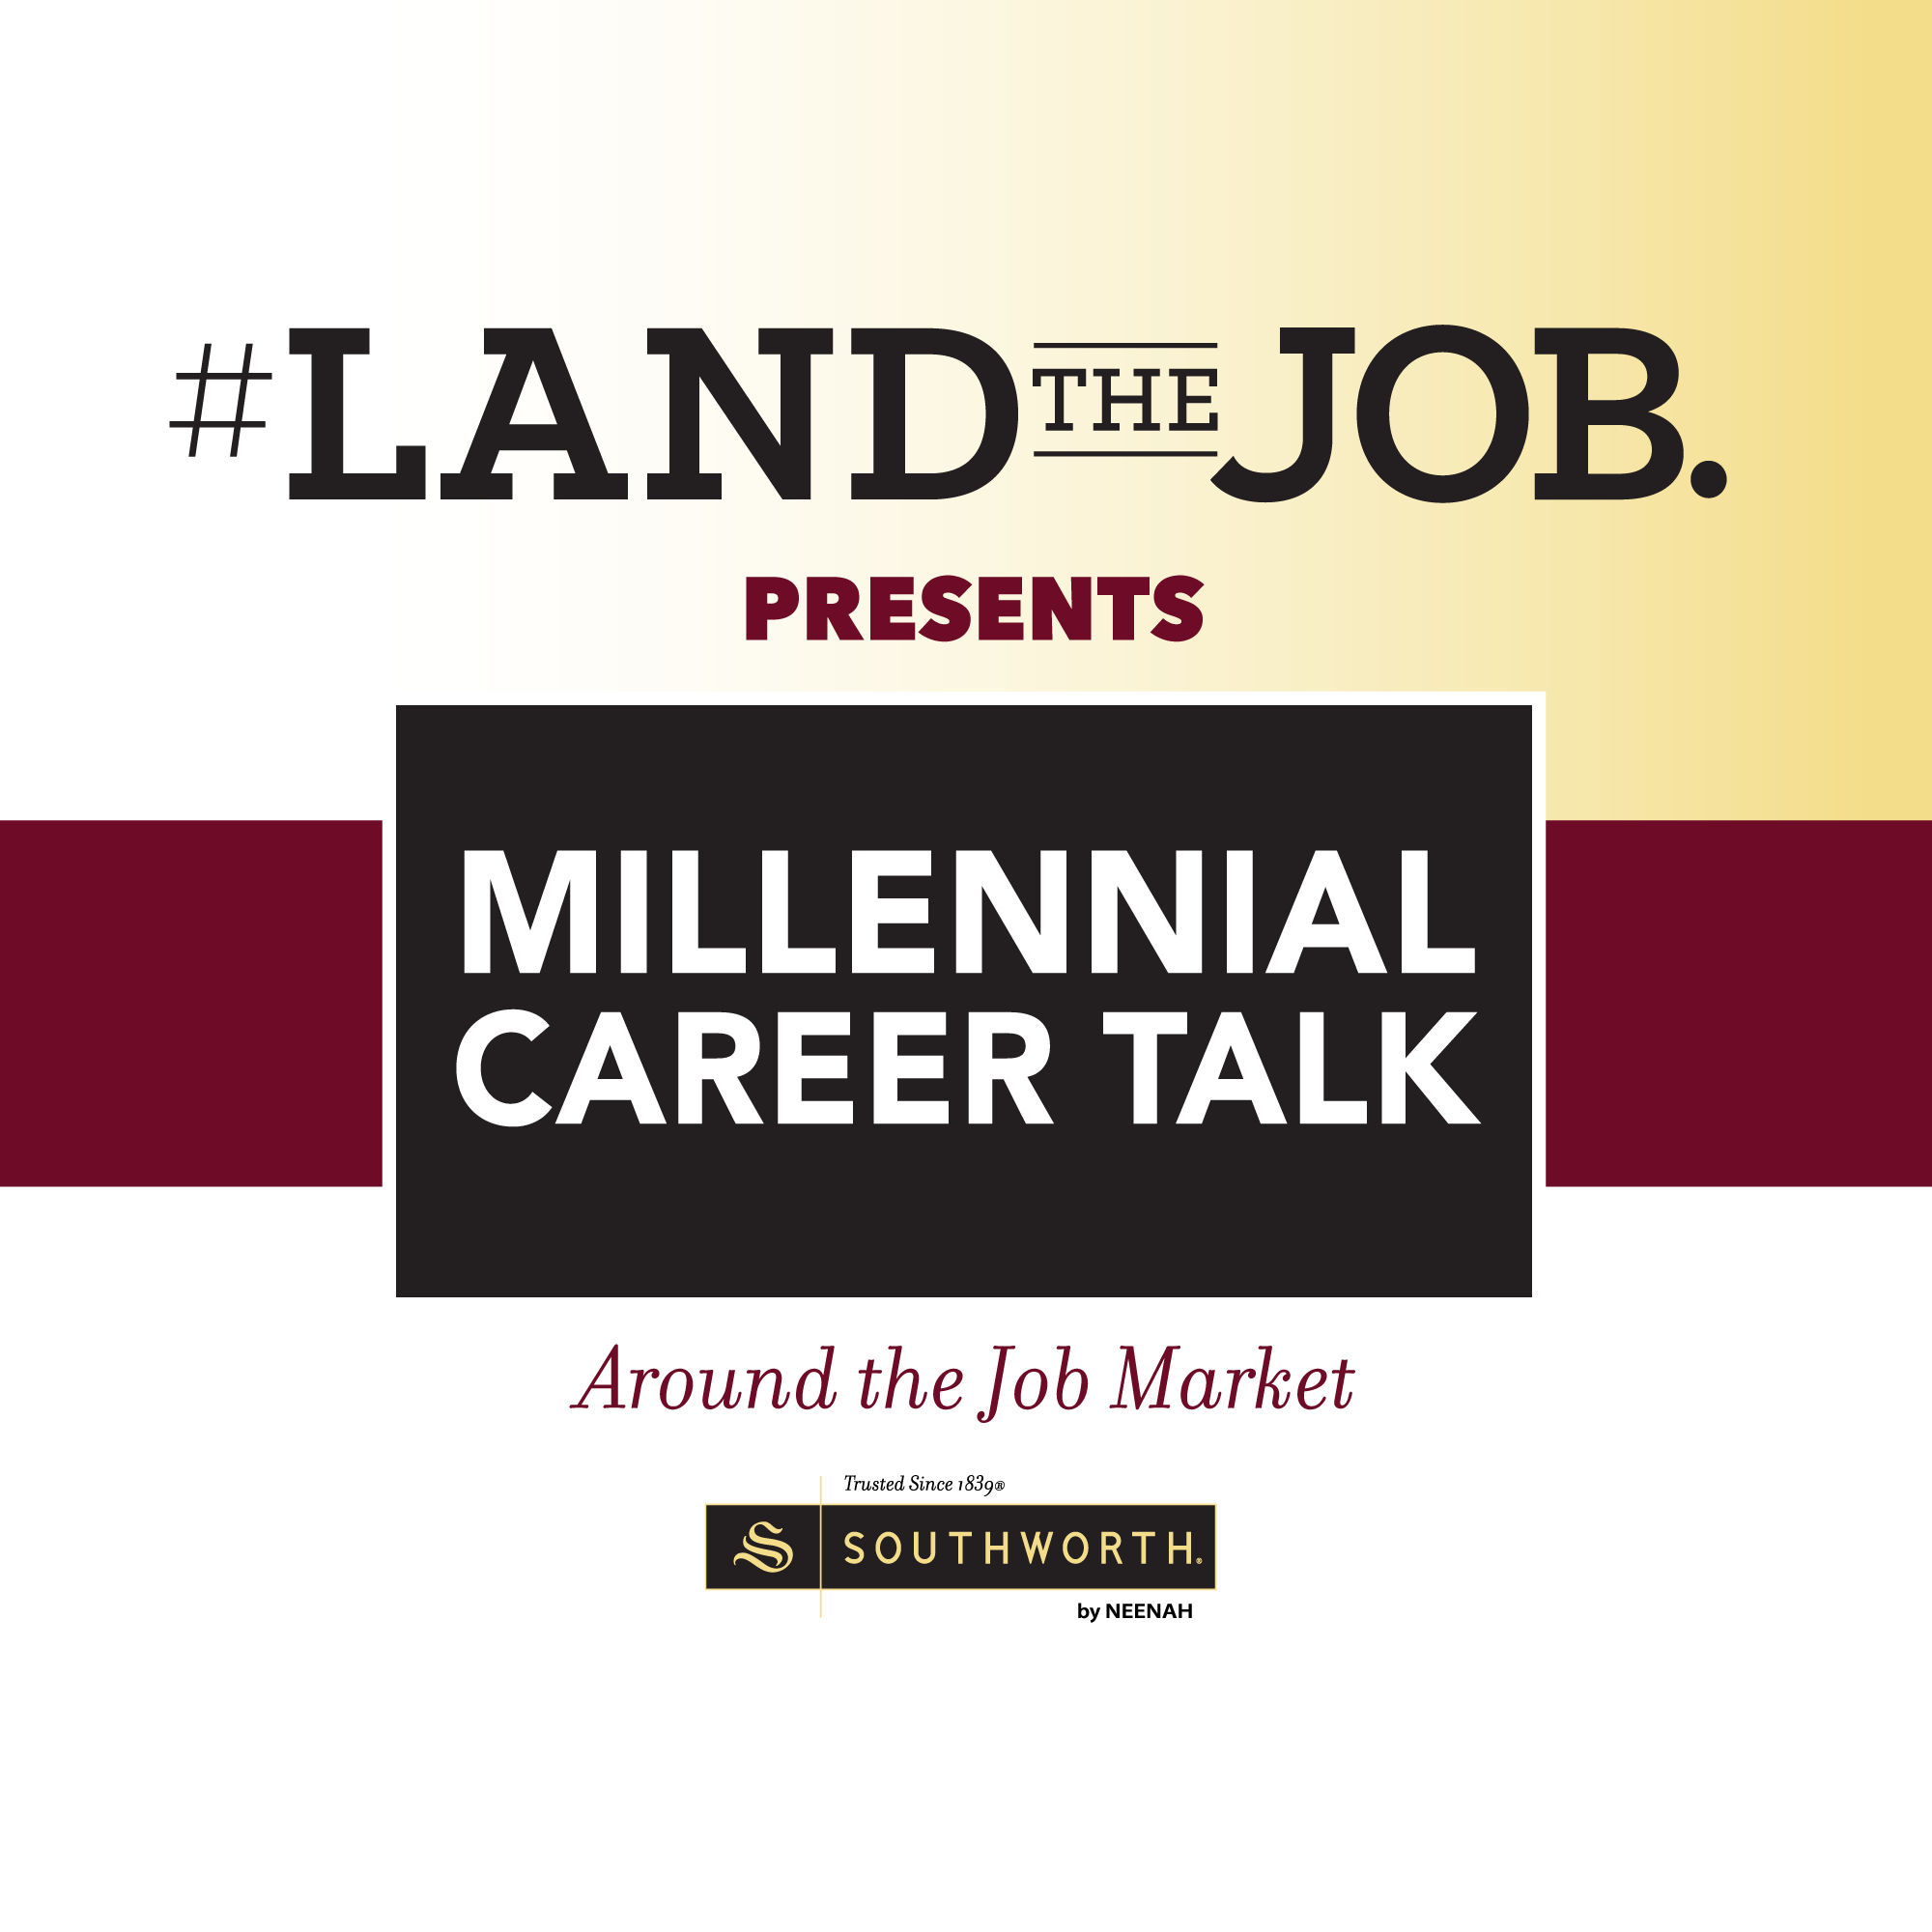 Millennial Career Talk